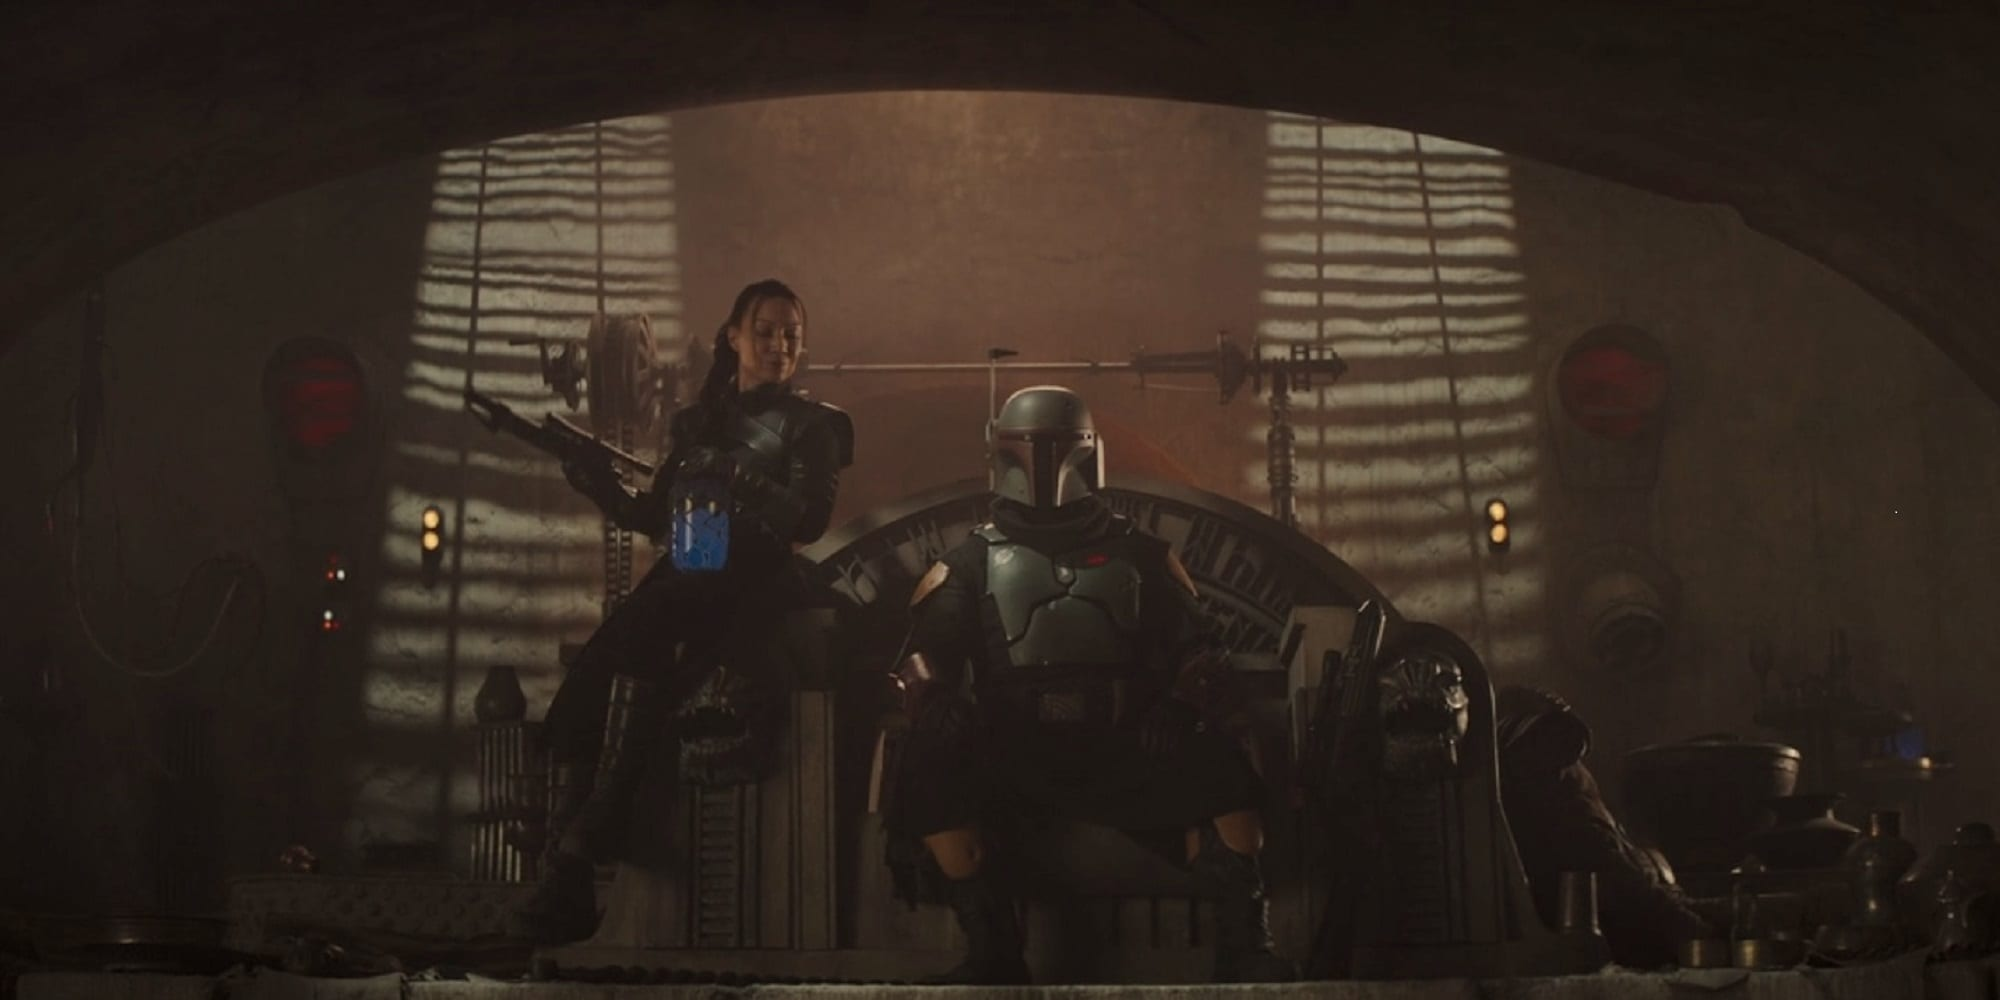 The Mandalorian Season 2 Finale The Book of Boba Fett Fennec Shand Ming-Na Wen Temuera Morrison